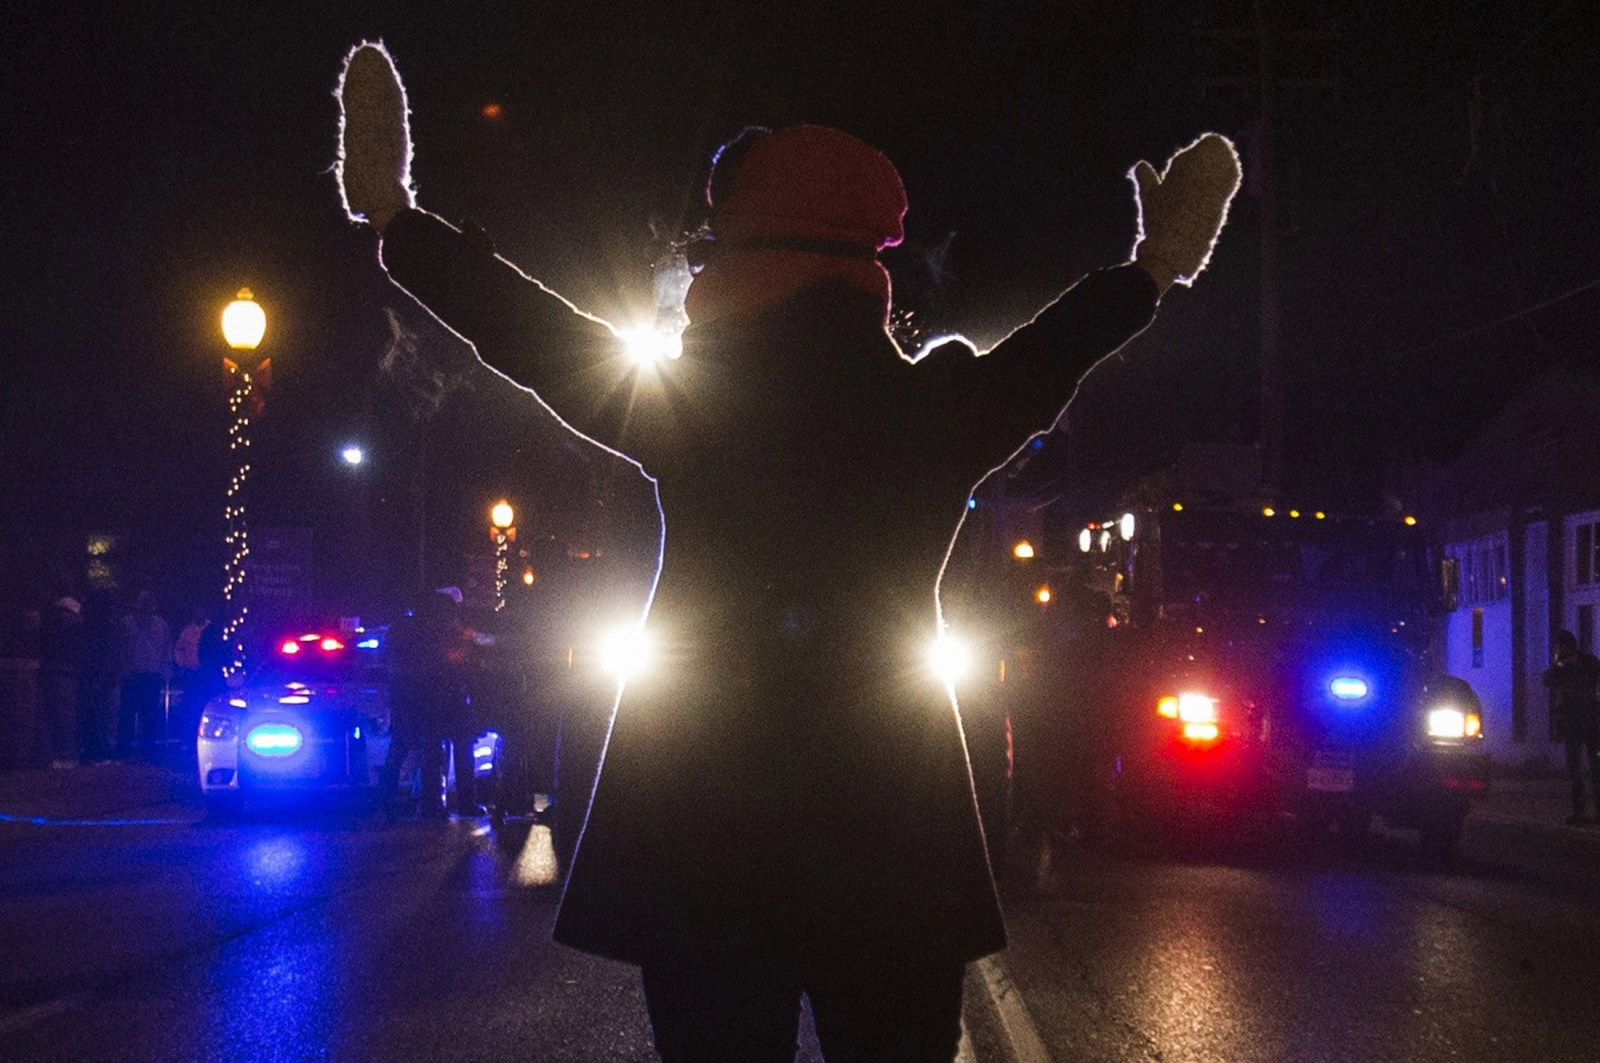 Ferguson: Two FBI Agents Shot as Michael Brown Protests Rage